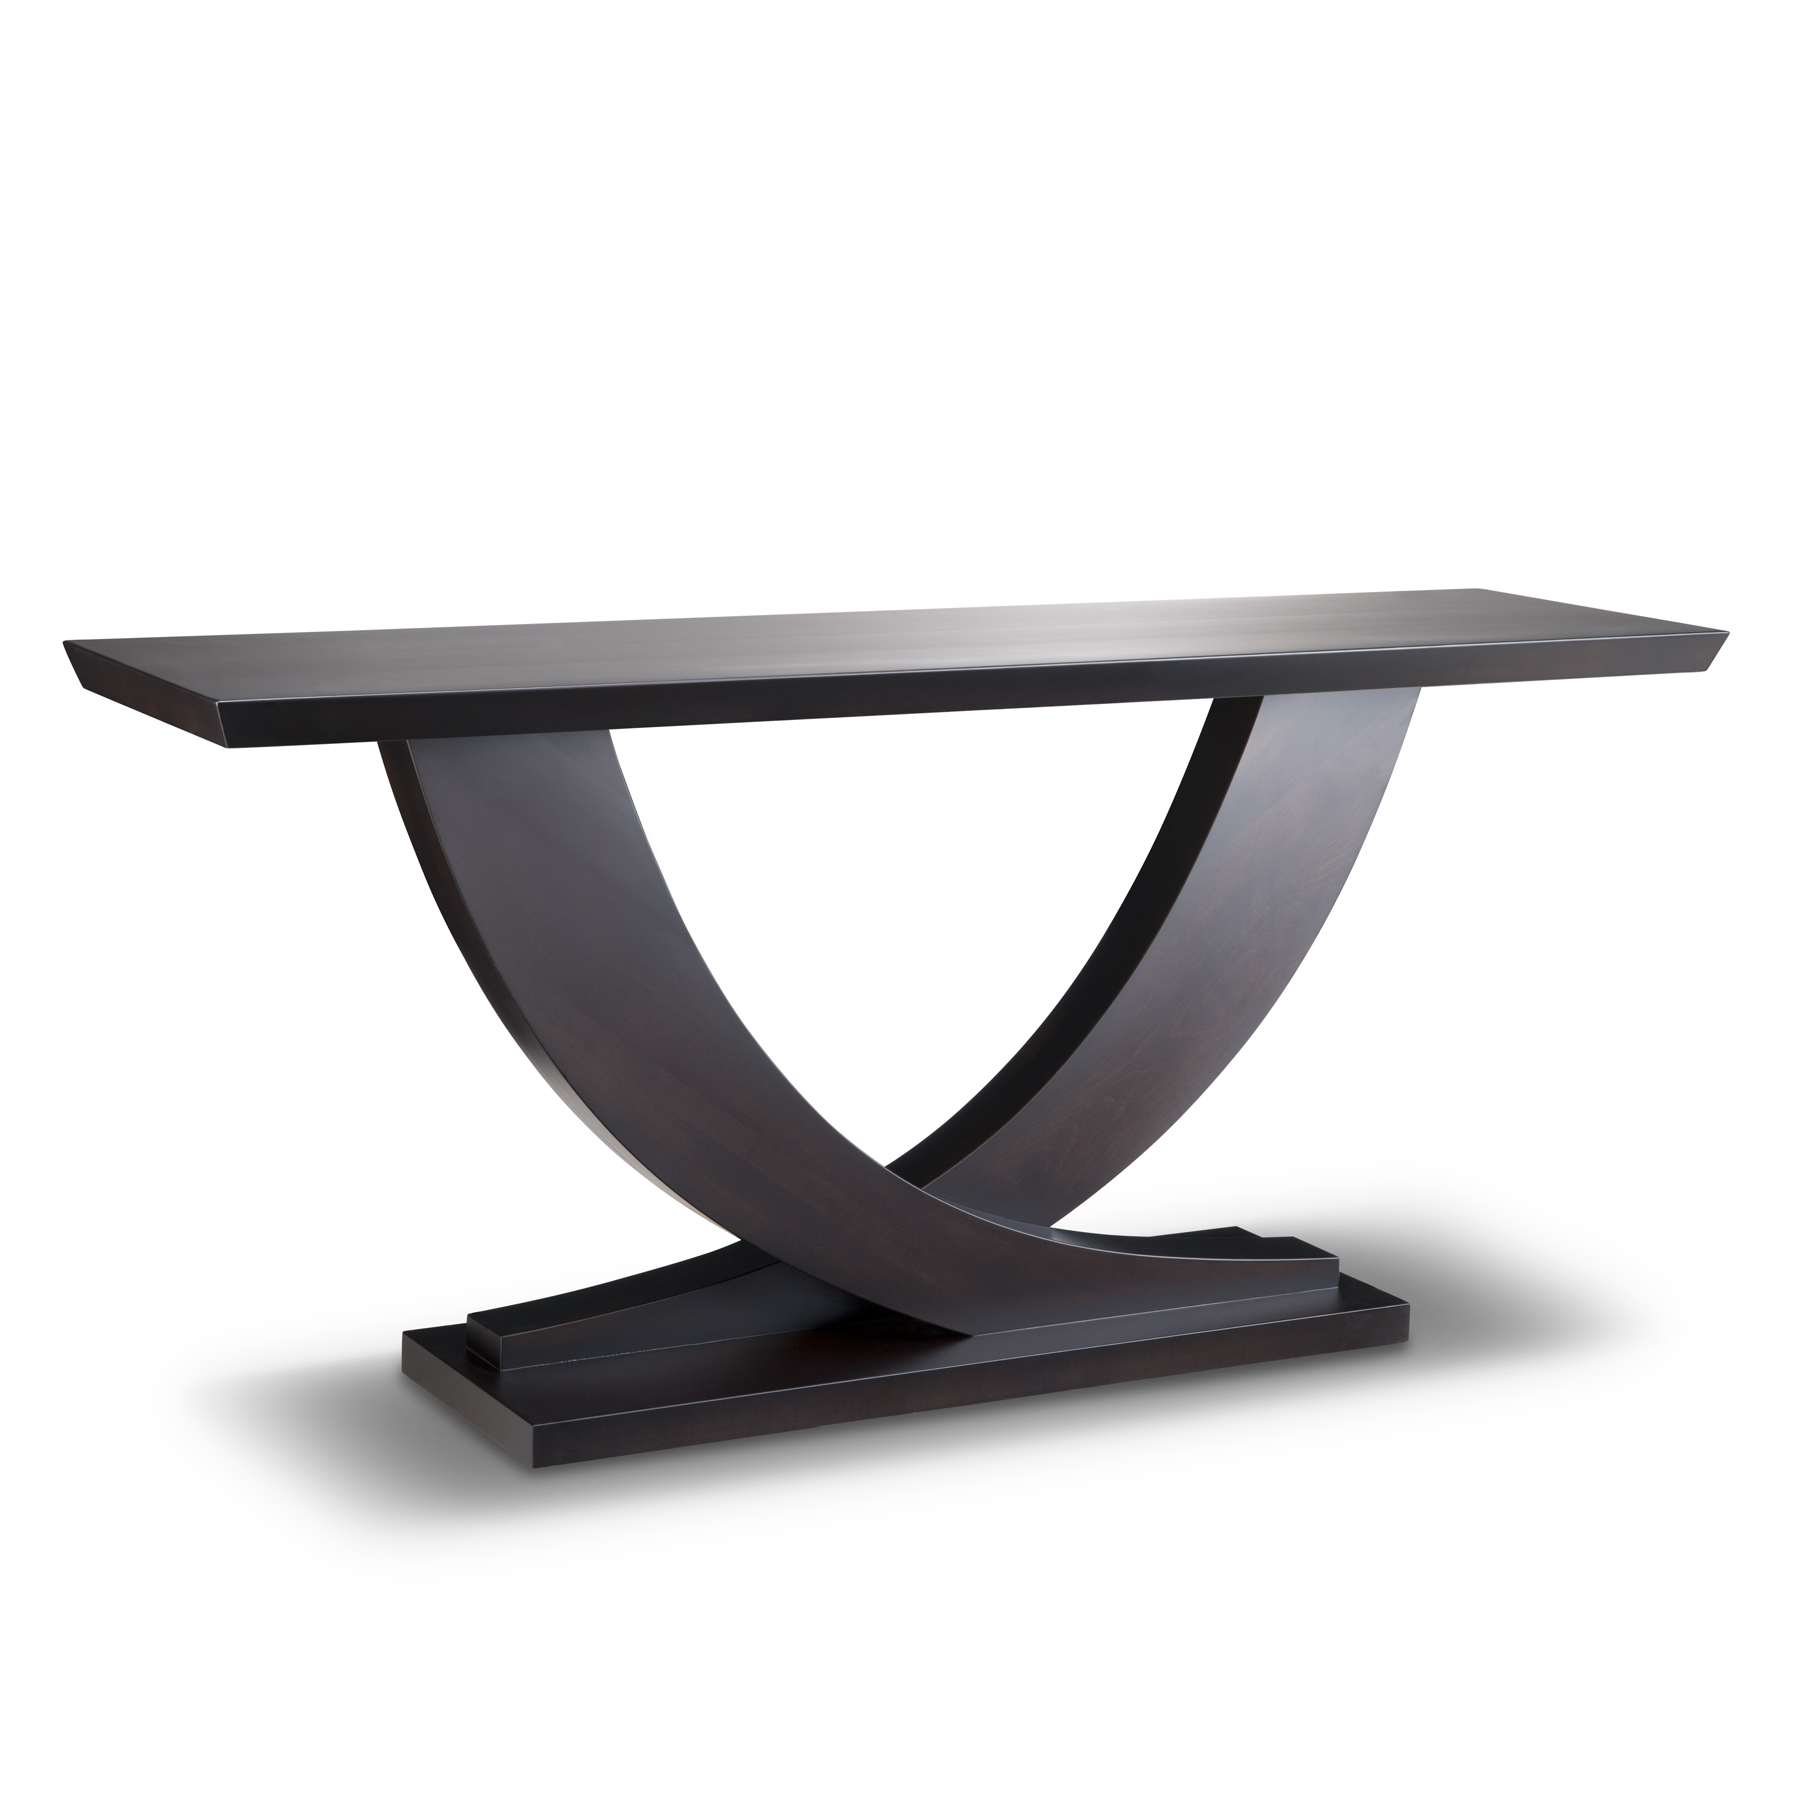 Table-A-New-Proof-1.jpg